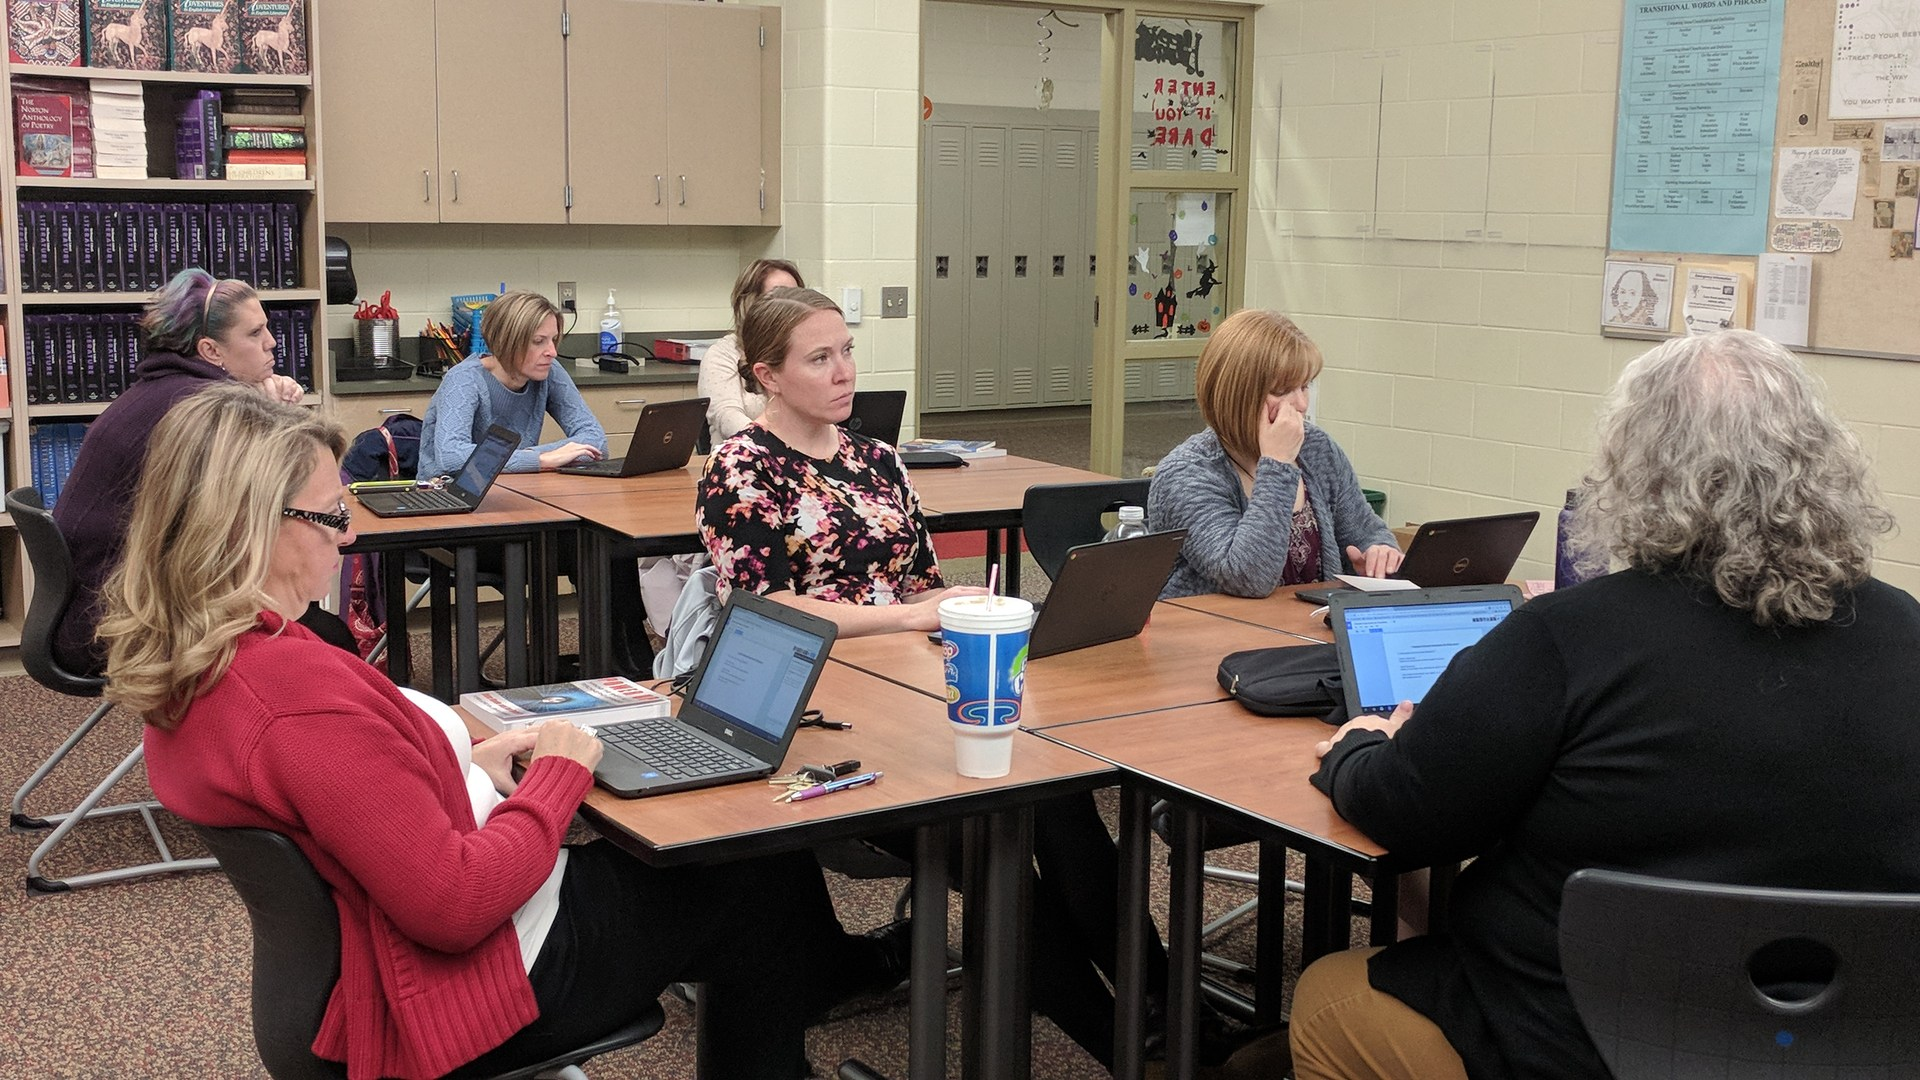 Teachers attend professional development training on Google Apps